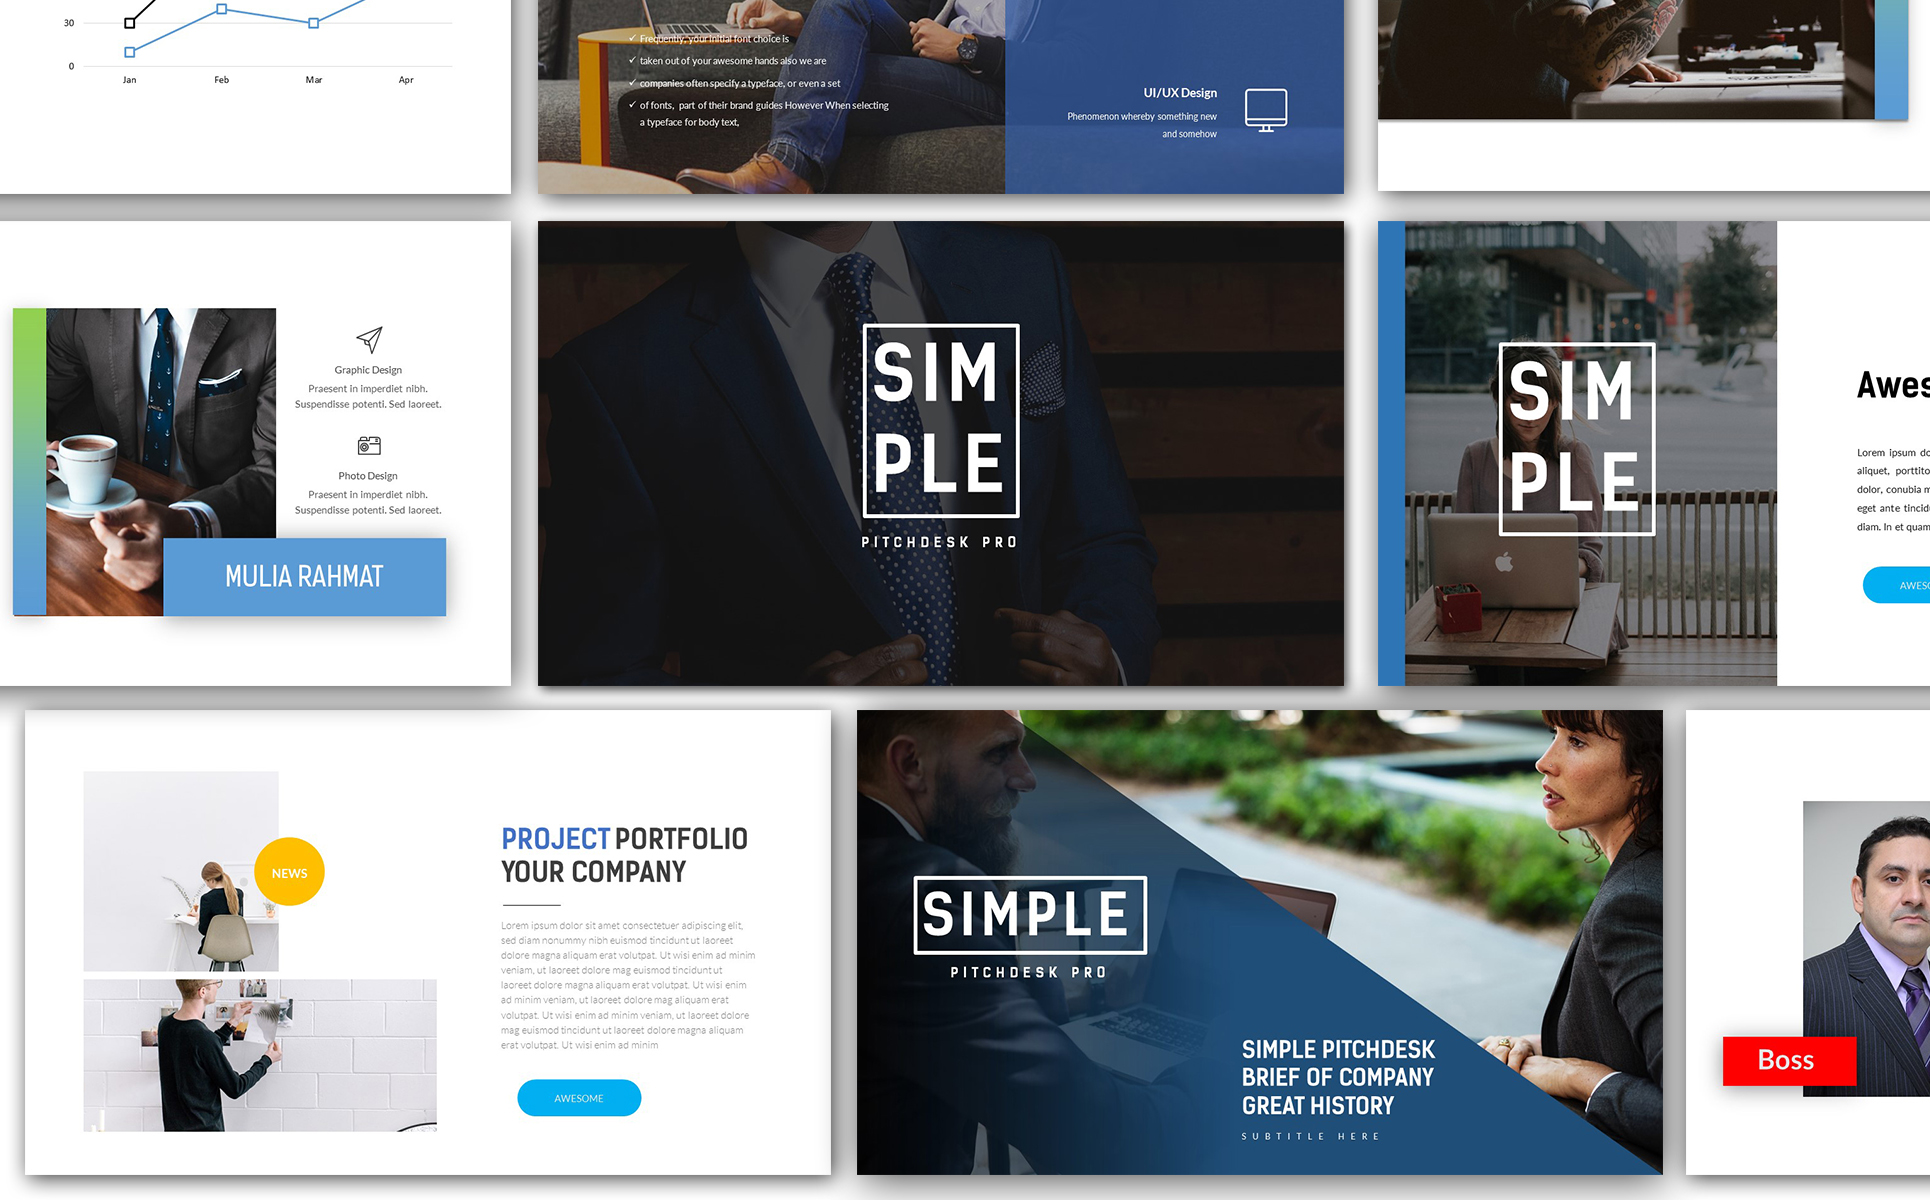 Simple pitchdesk pro powerpoint template 66230 simple pitchdesk pro powerpoint template big screenshot toneelgroepblik Image collections